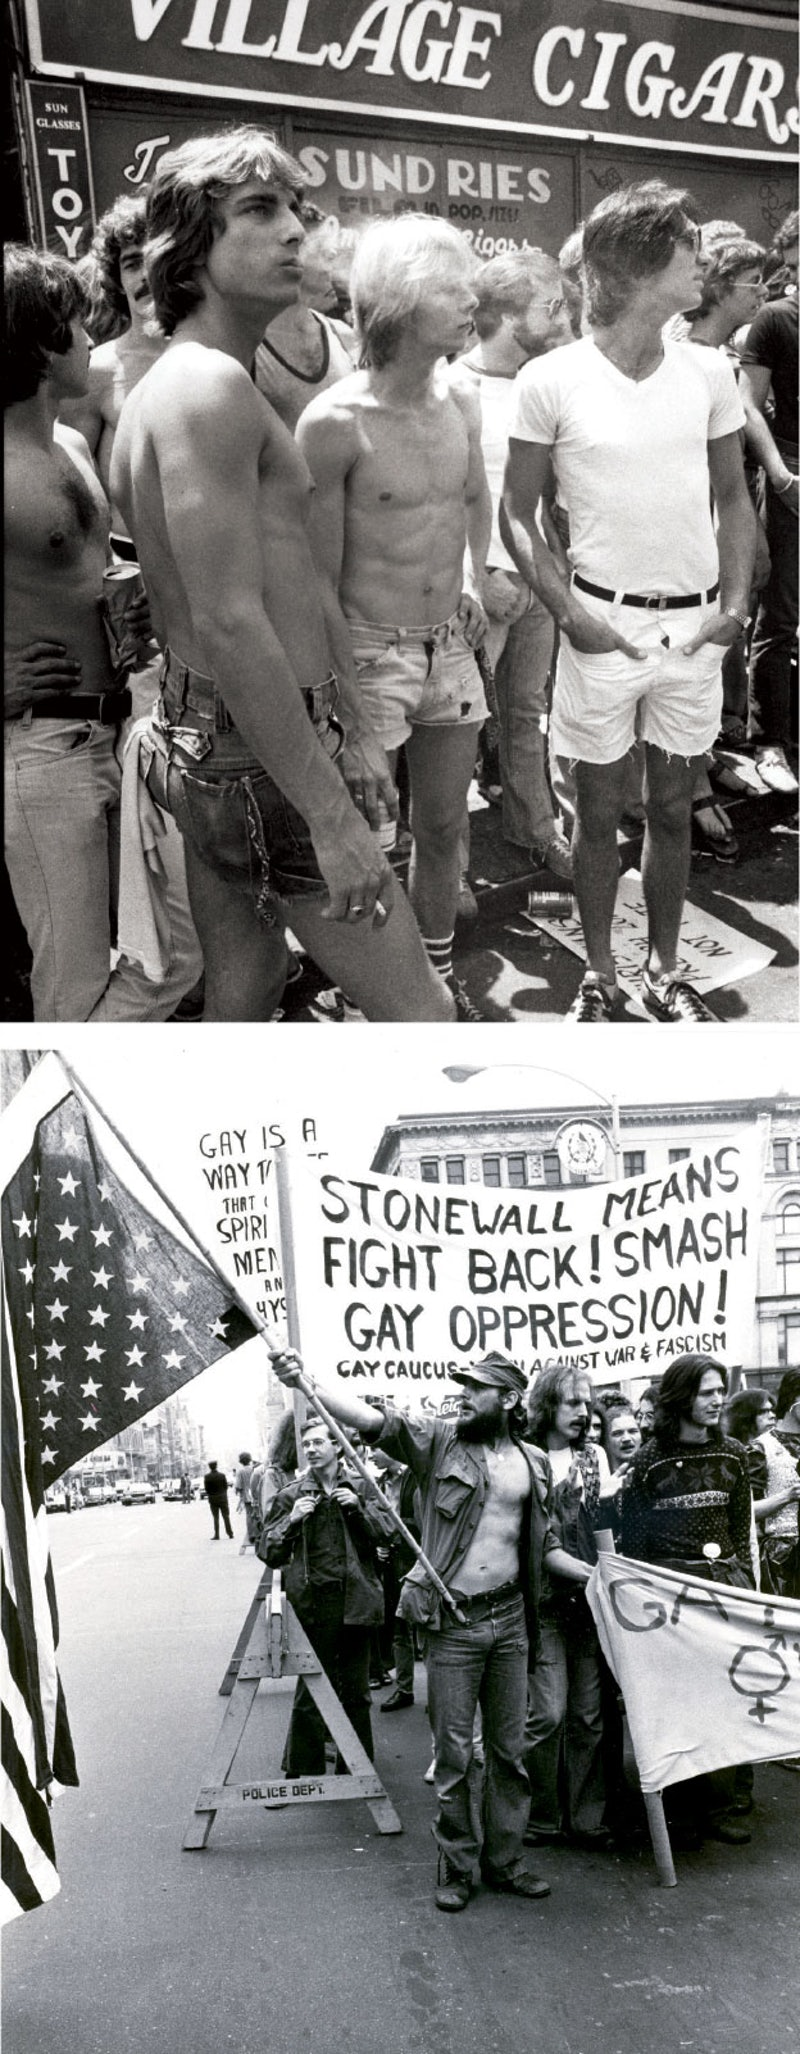 Gay Pride marches in New York City in the 1970s. Leonard Fink, Courtesy of  LGBT Community Center National History Archive